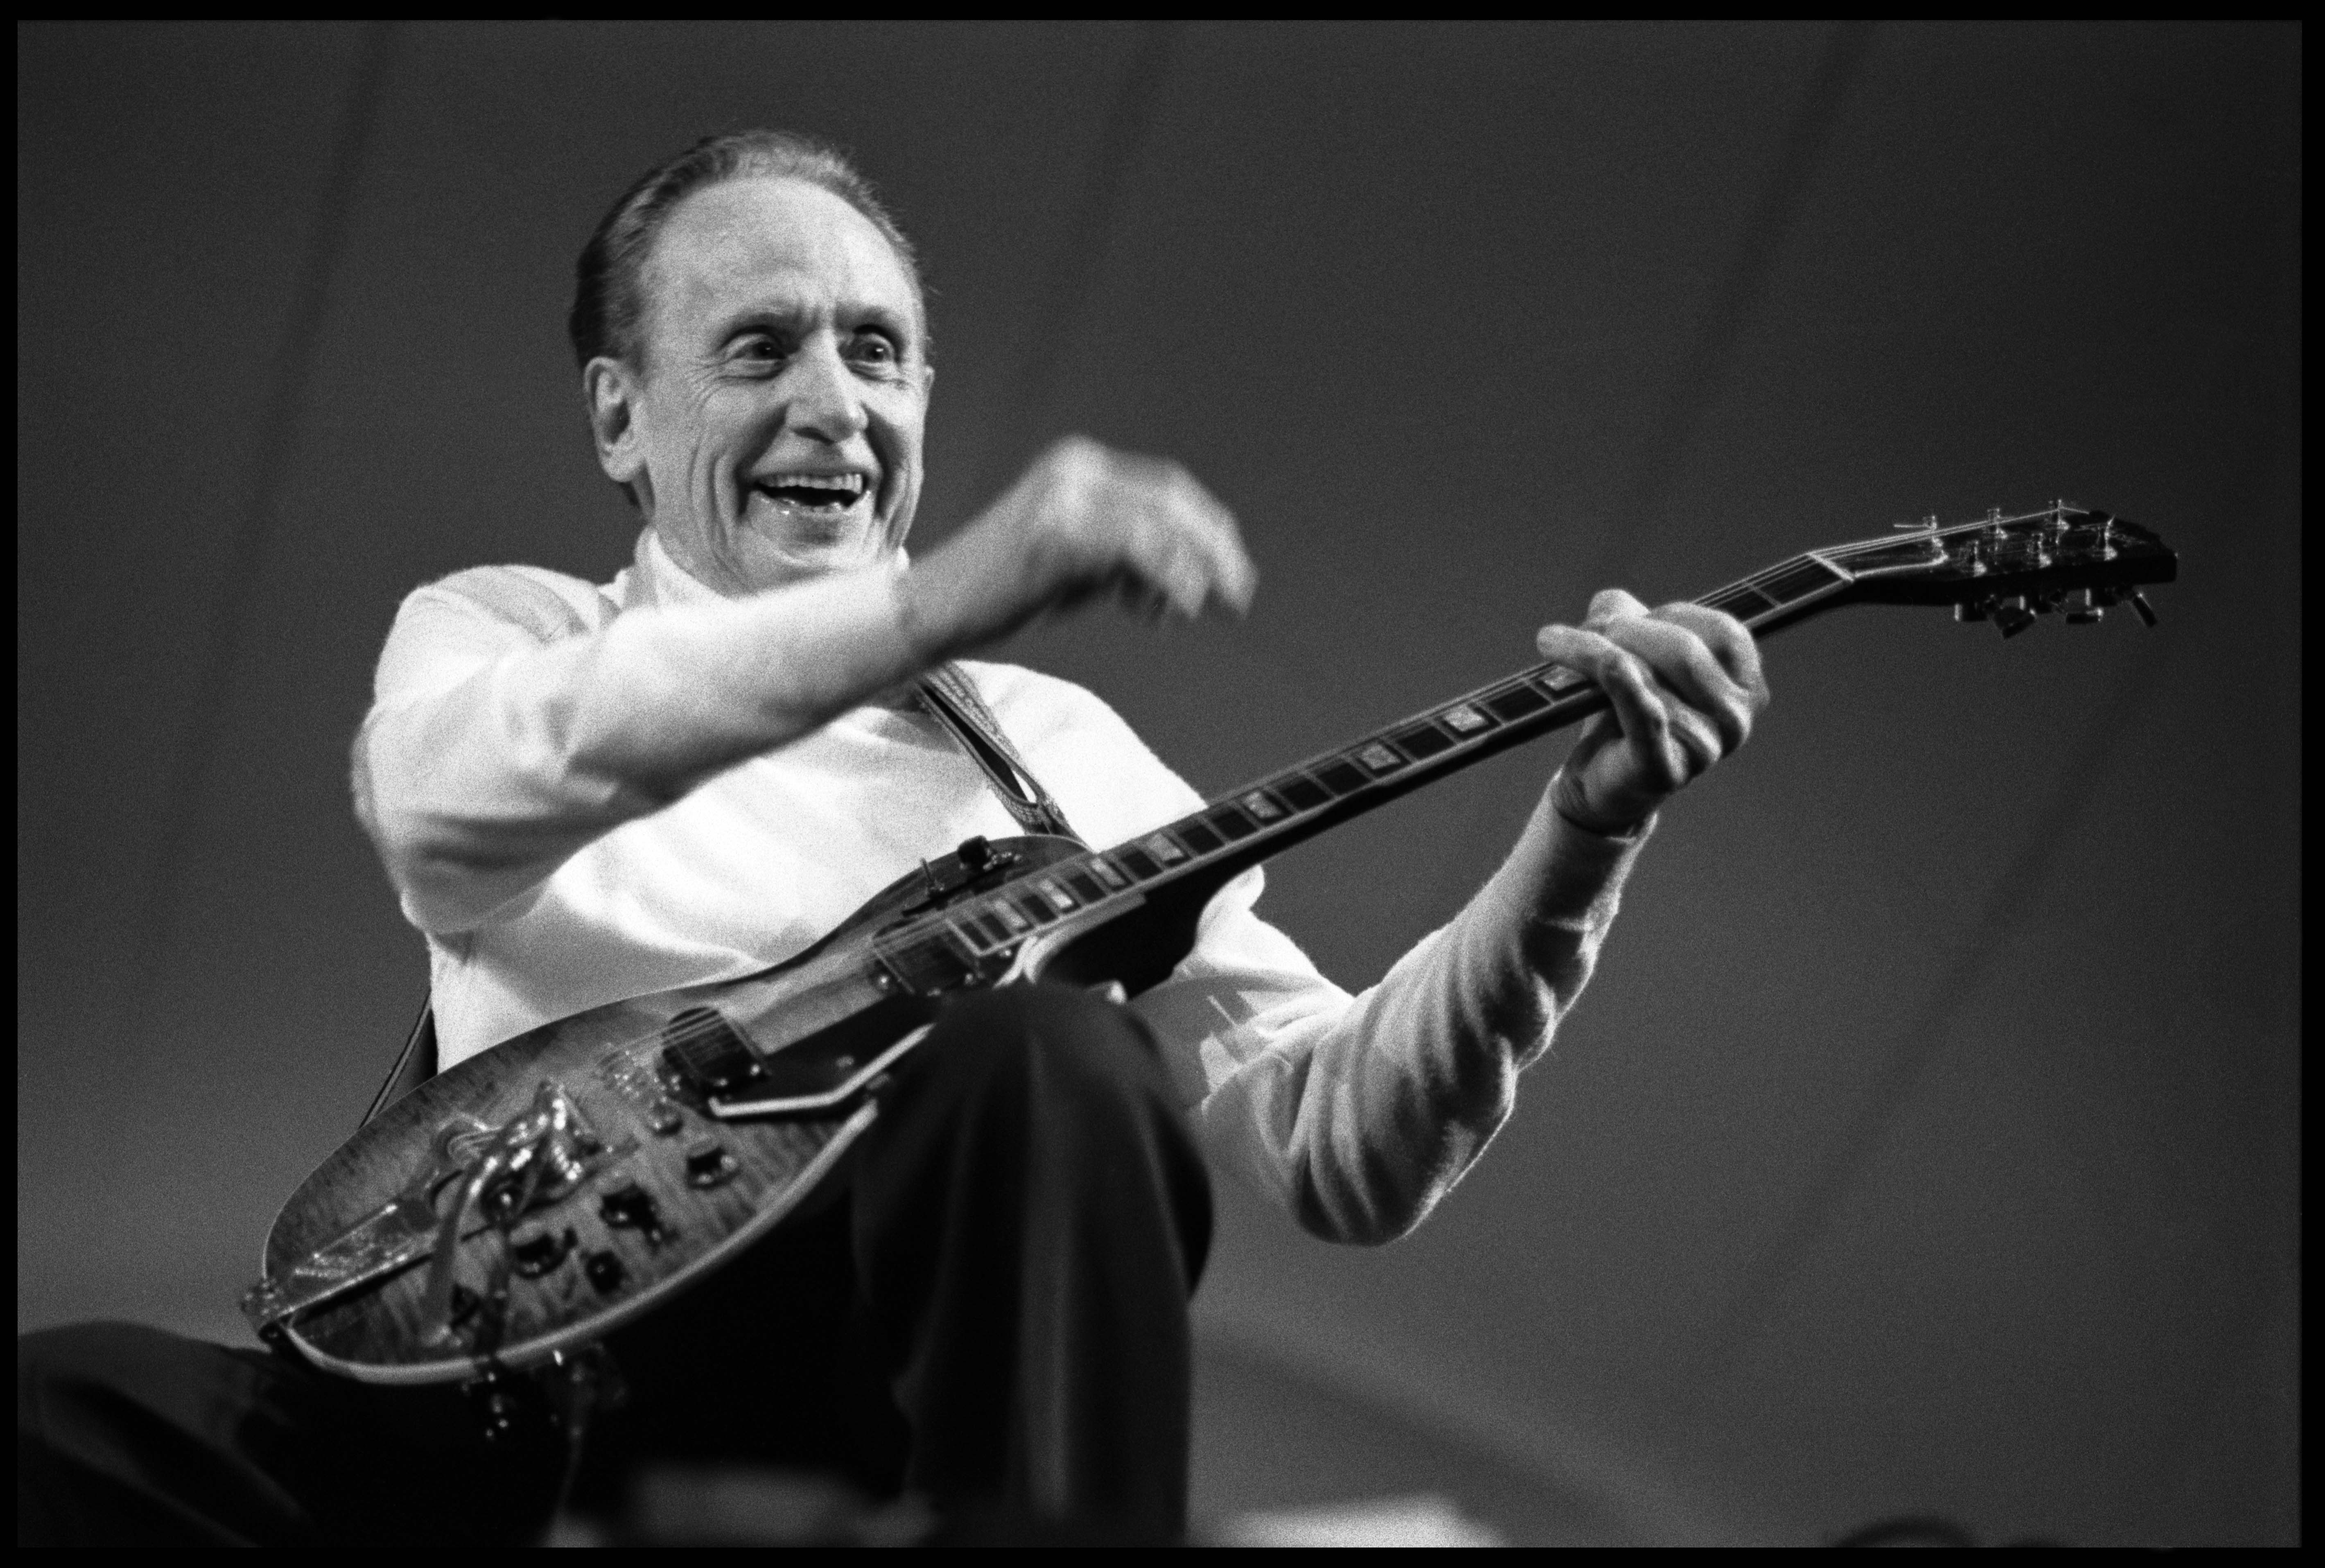 Les Paul An amazingly talented guitarist, Paul had a series of futuristic-sounding hits in the 1950s. But his music has been superseded by his invention: Paul pioneered the design and construction of the modern electric guitar, which made everyone else on this list very rich.